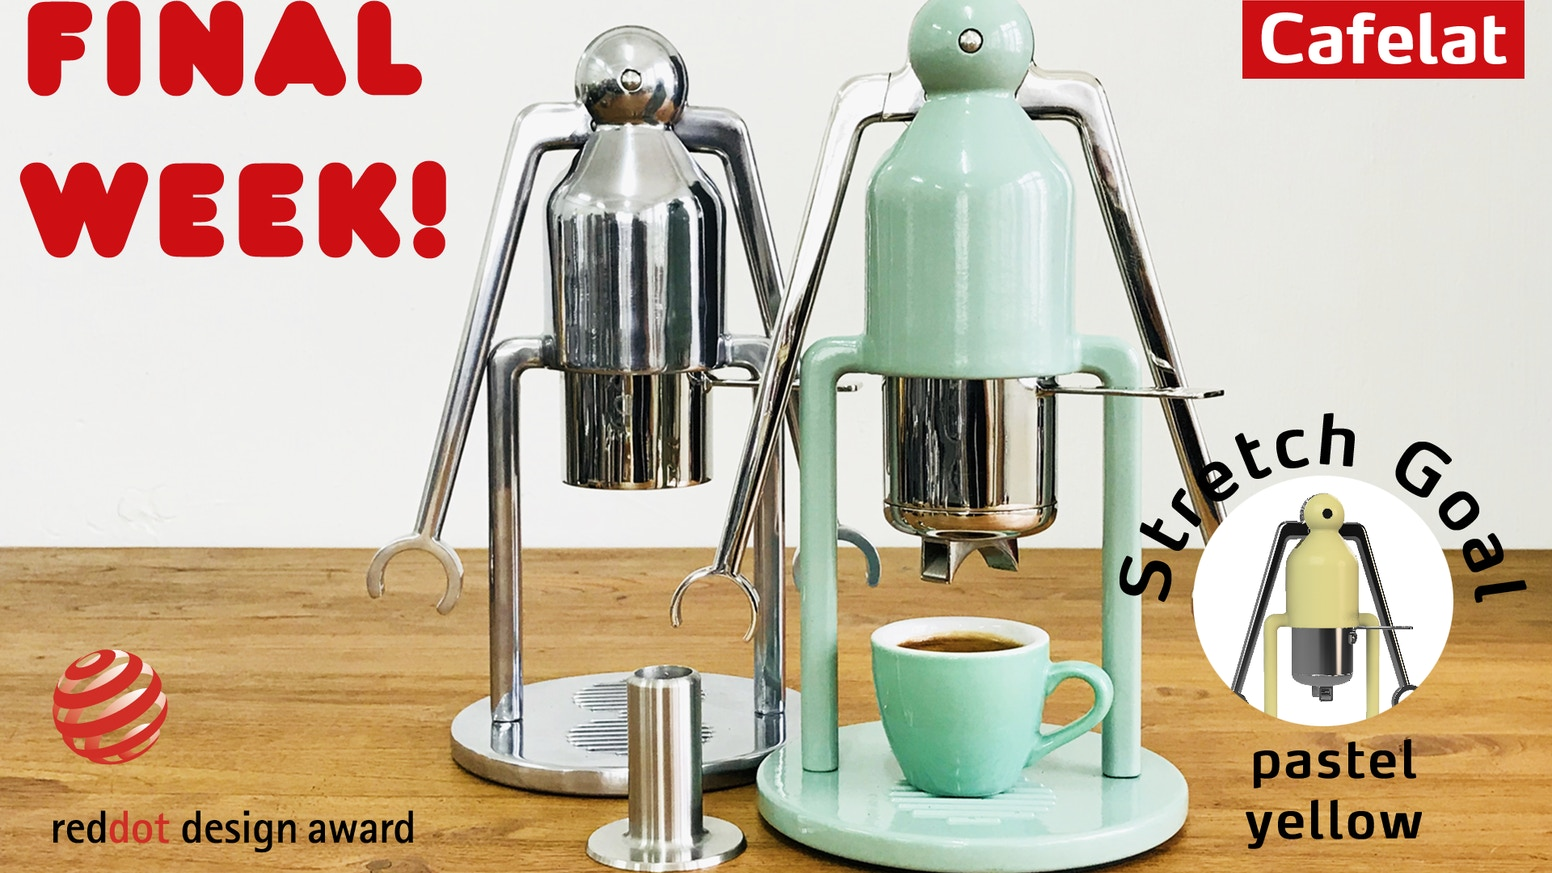 Cafelat Robot - Manual Espresso Coffee Maker